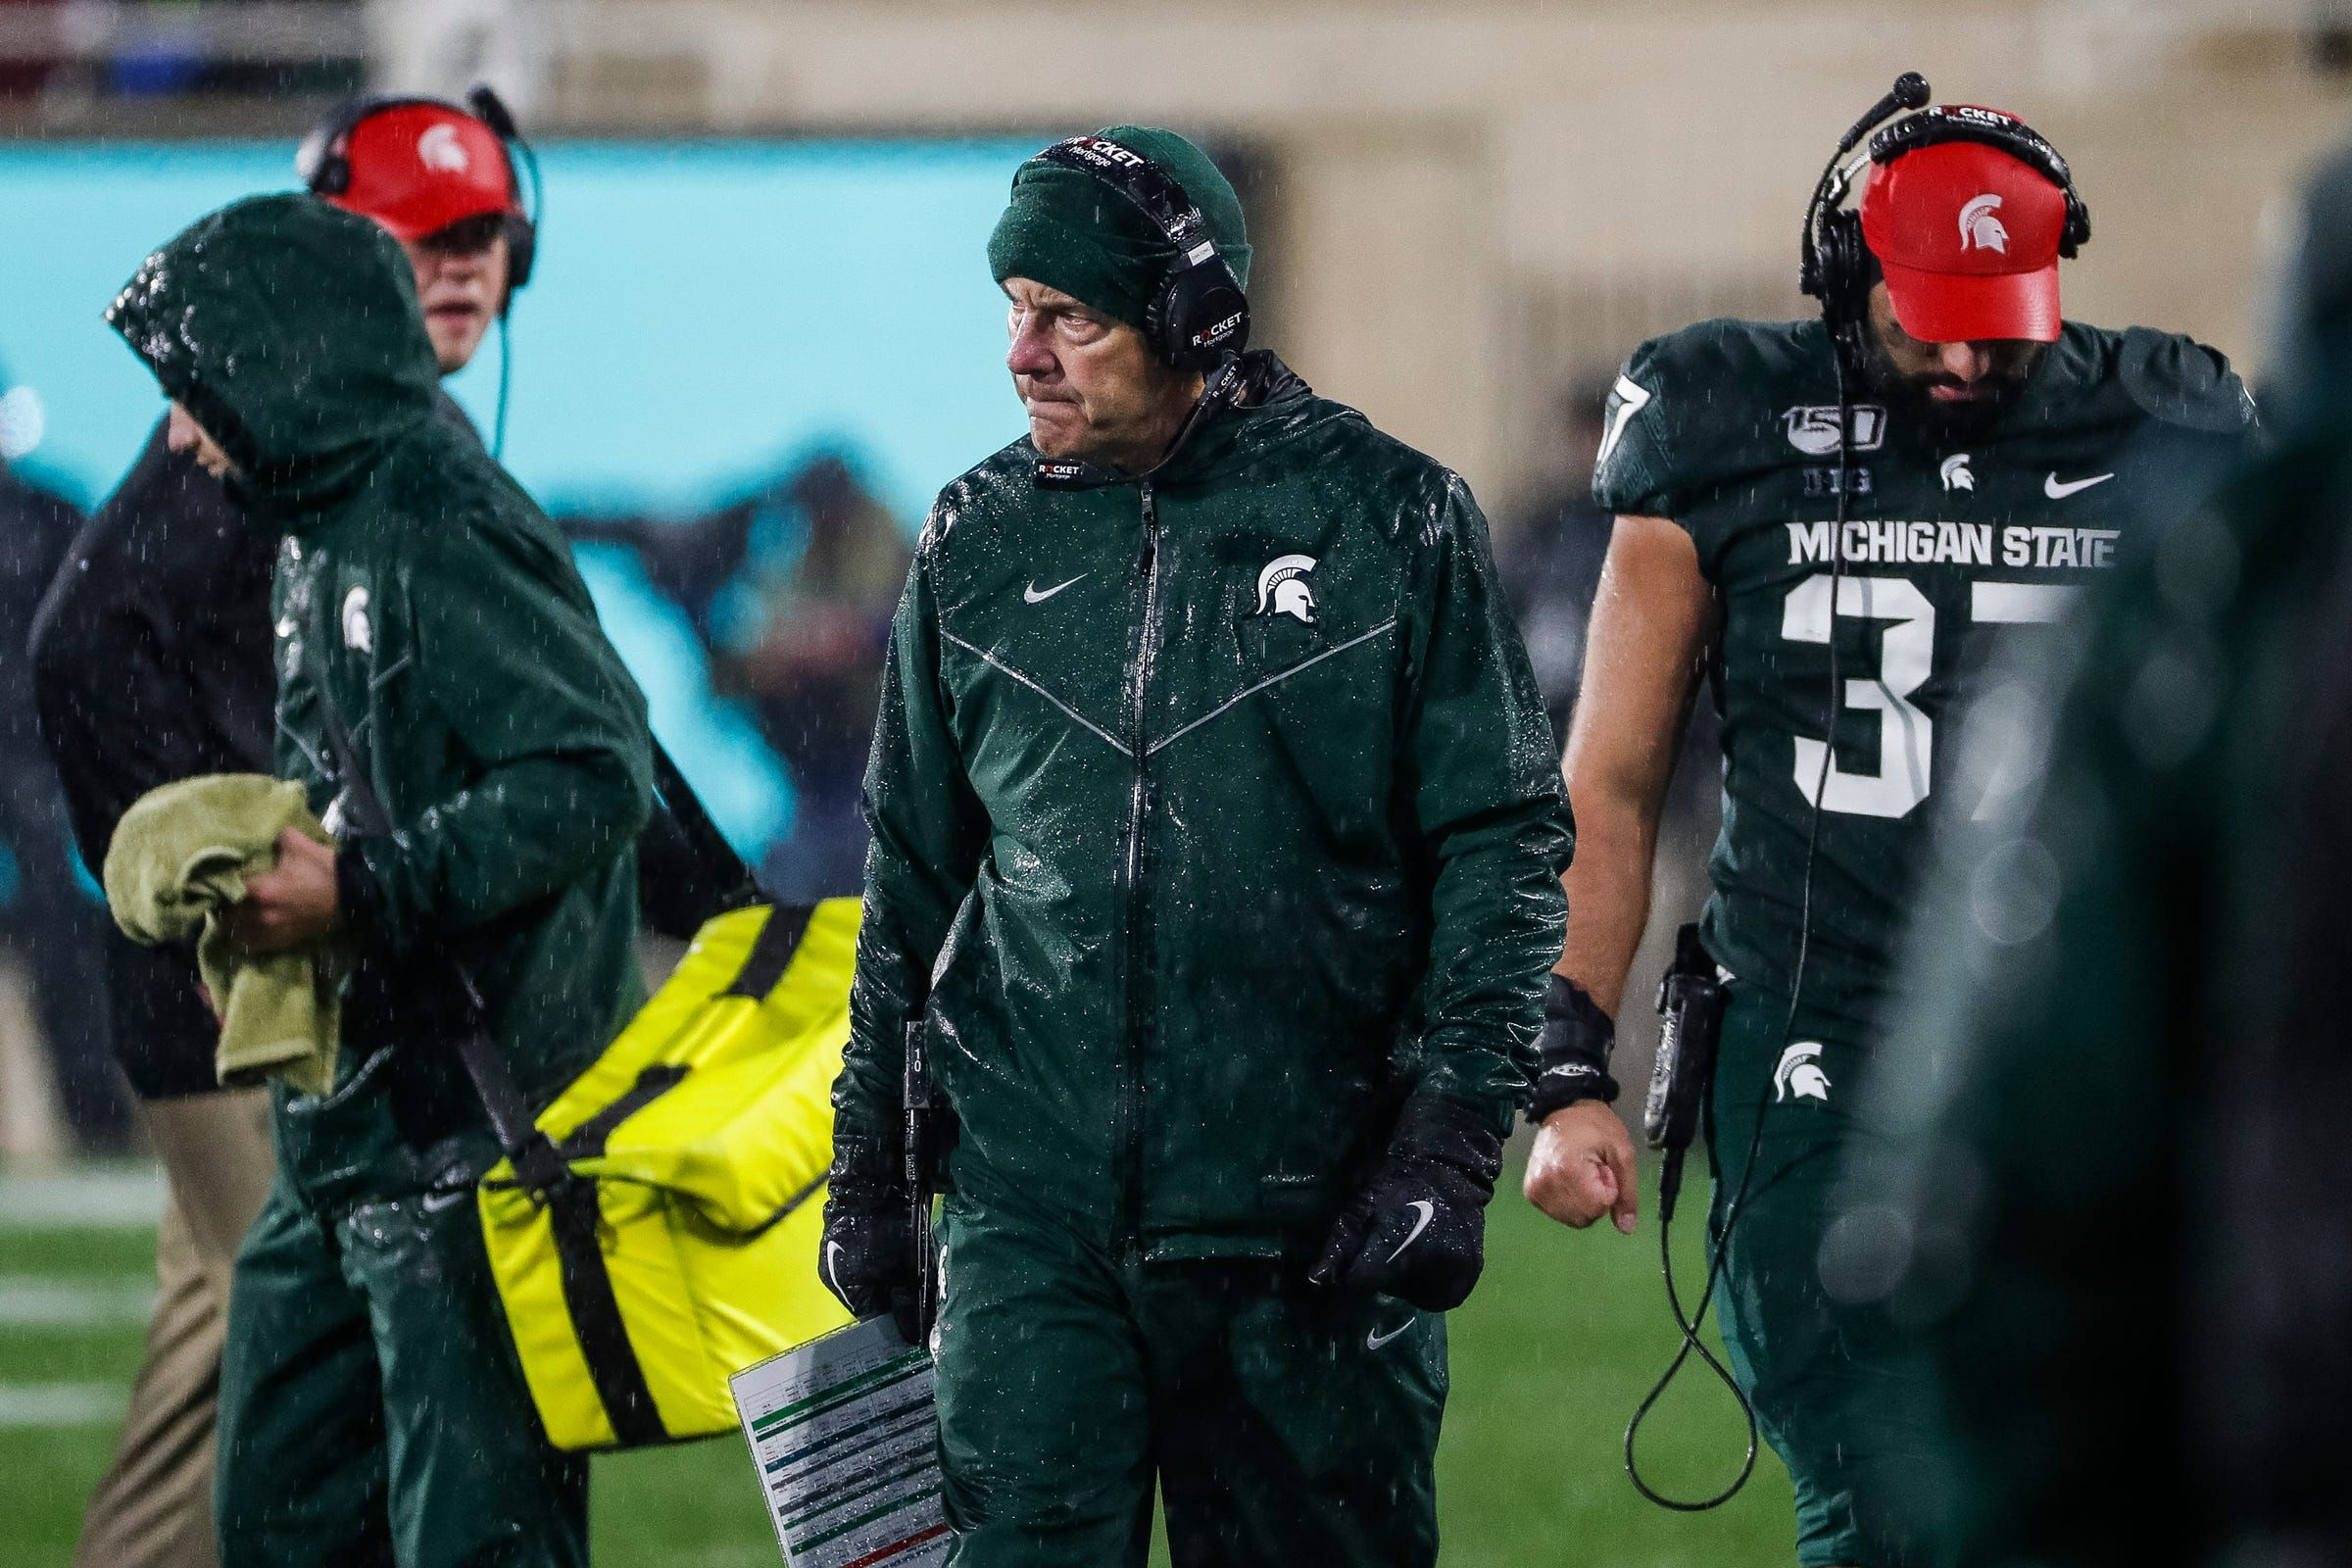 Michigan State S Mark Dantonio Lives In The Present Of Michigan Week As Some Demand Change Michigan State Football Mark Dantonio Msu Football